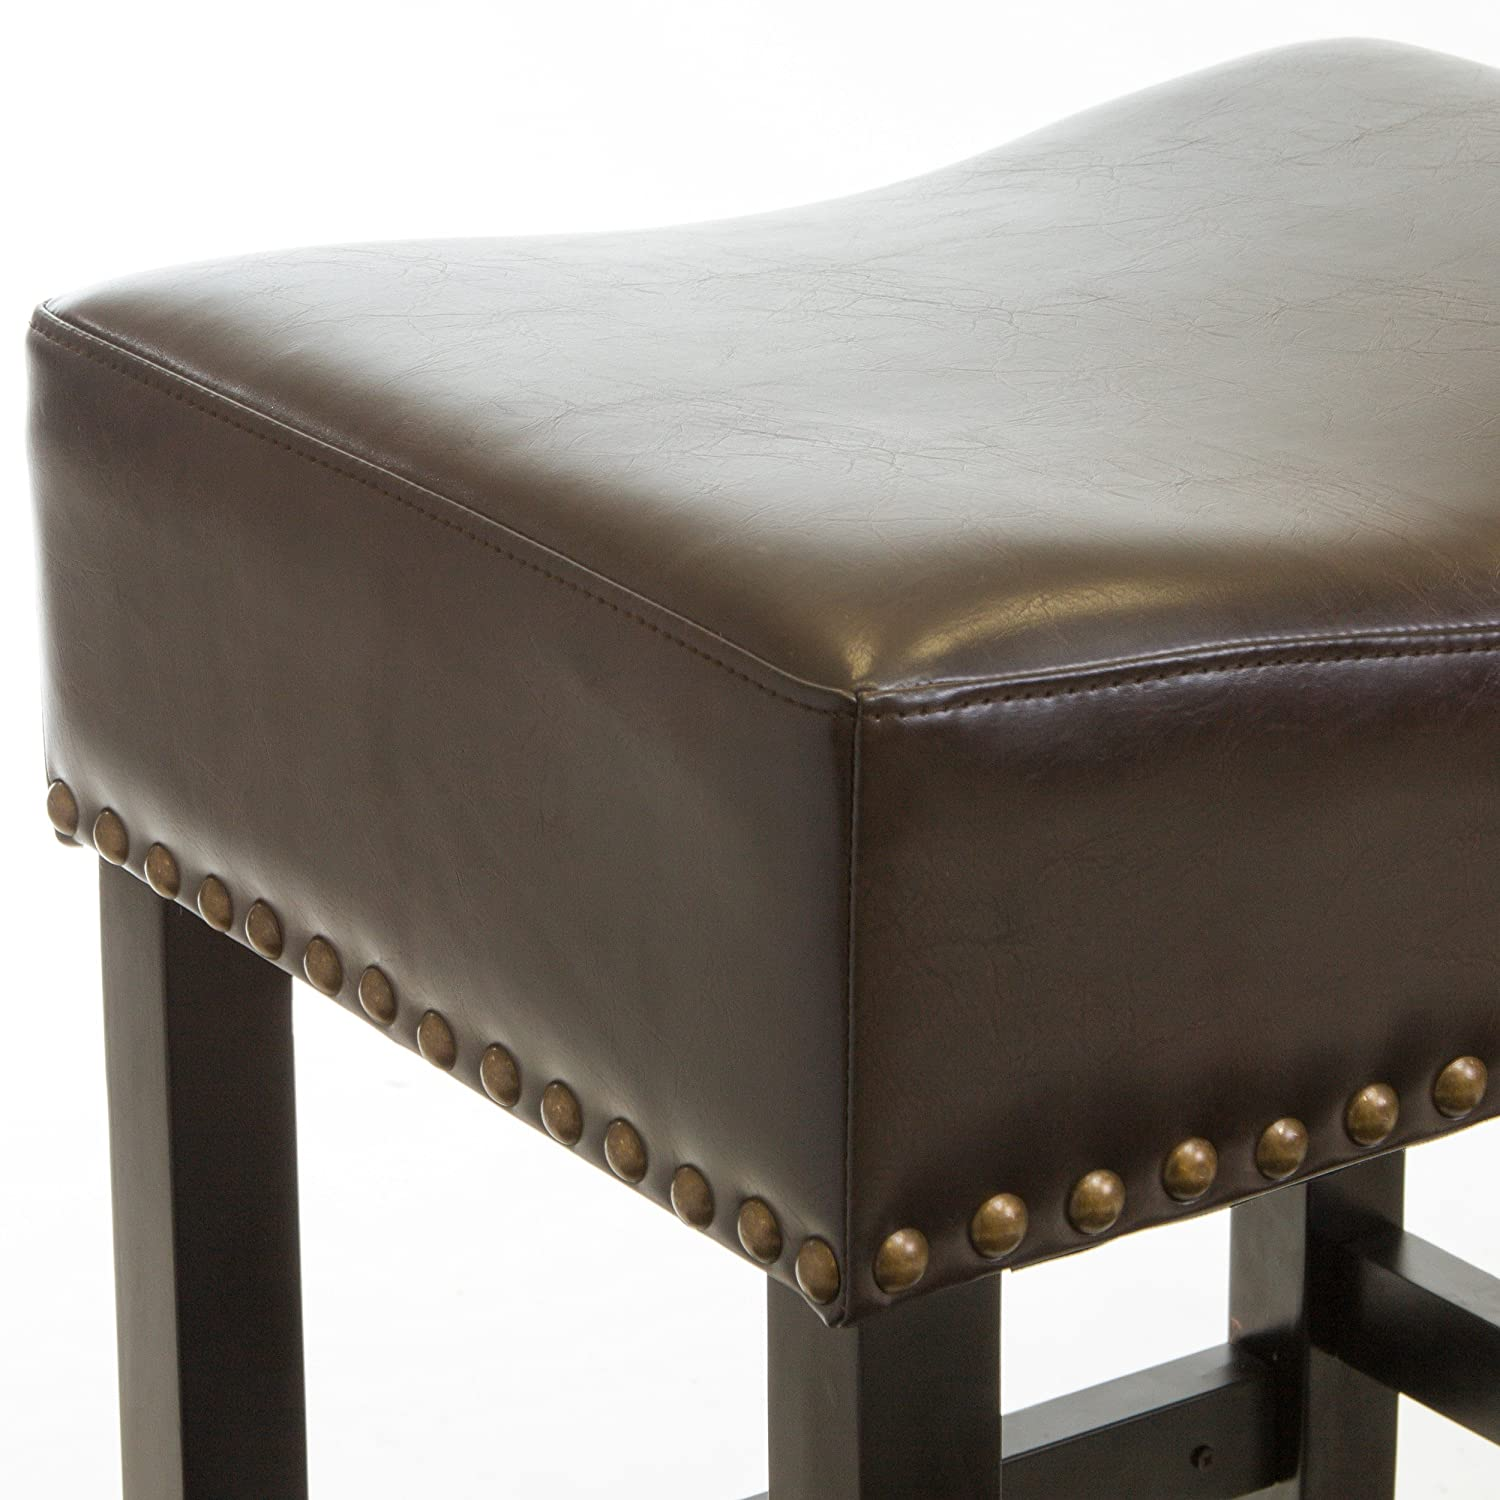 Best Selling Lisette Brown Leather Backless Counter Stool Set of 2 Heavy Metal Inc.--DROPSHIP 635832AZ